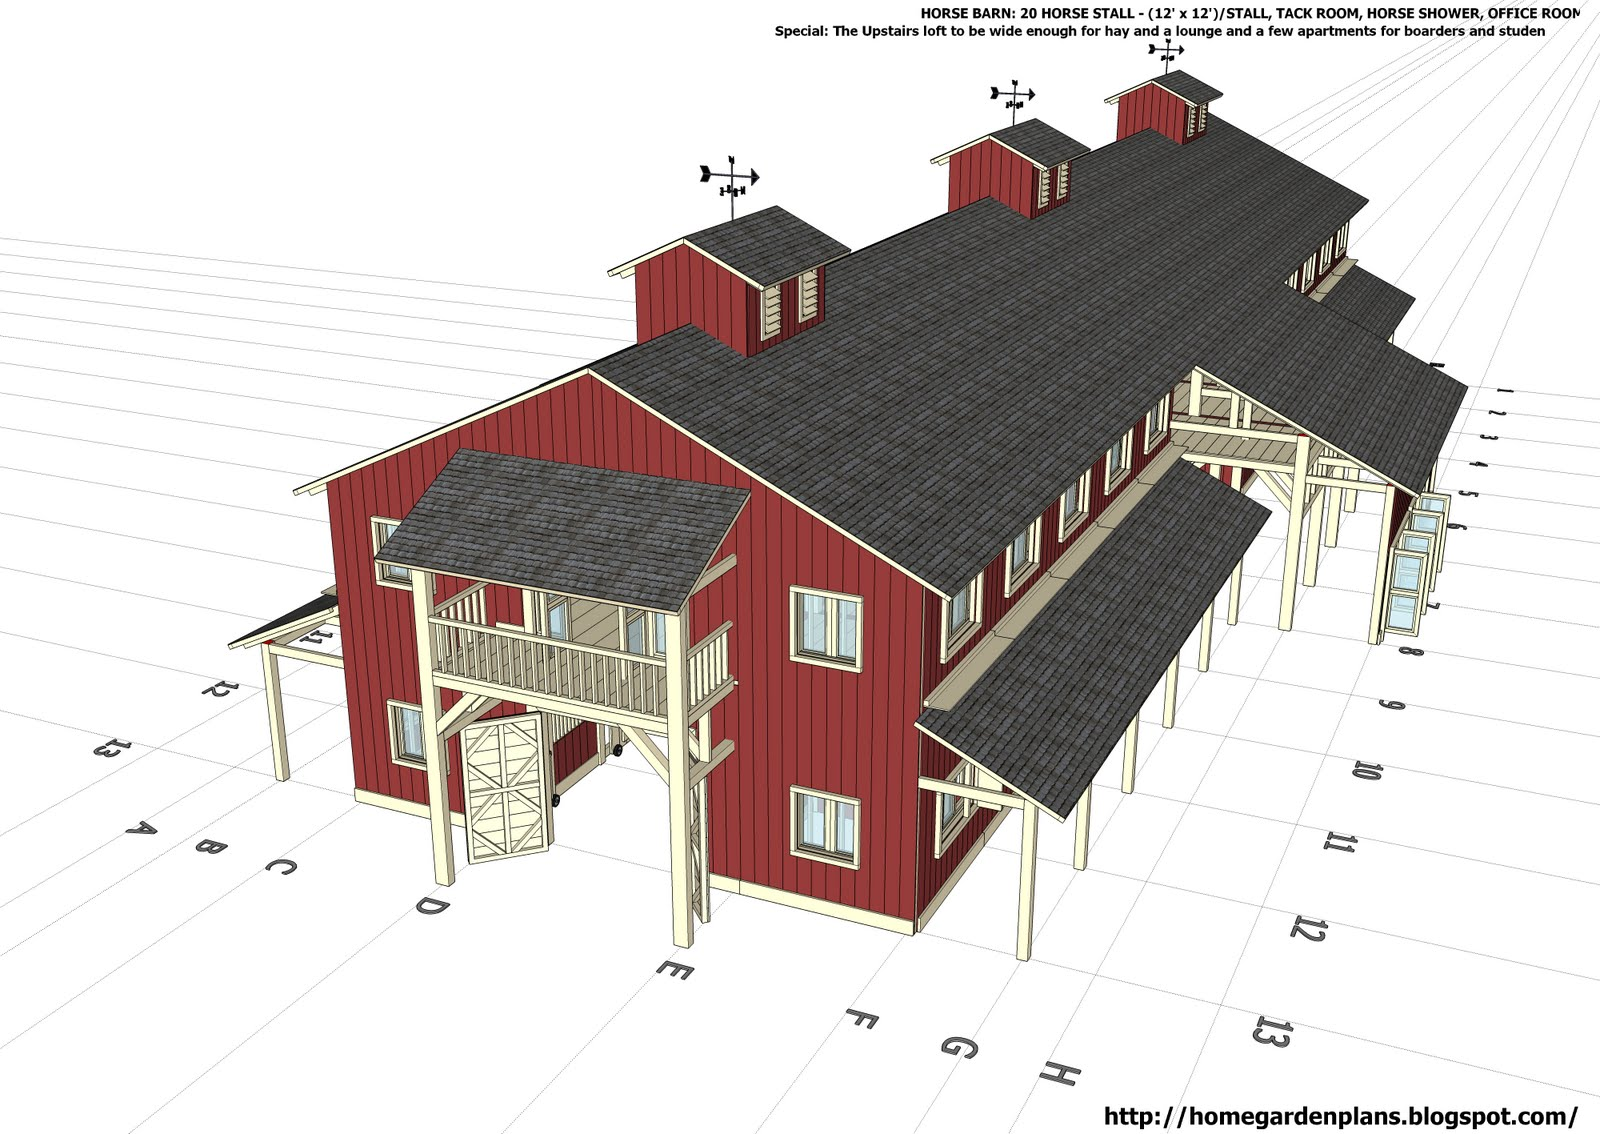 Nosecret more 12 x 10 storage shed plans free for Barn blueprints free plans